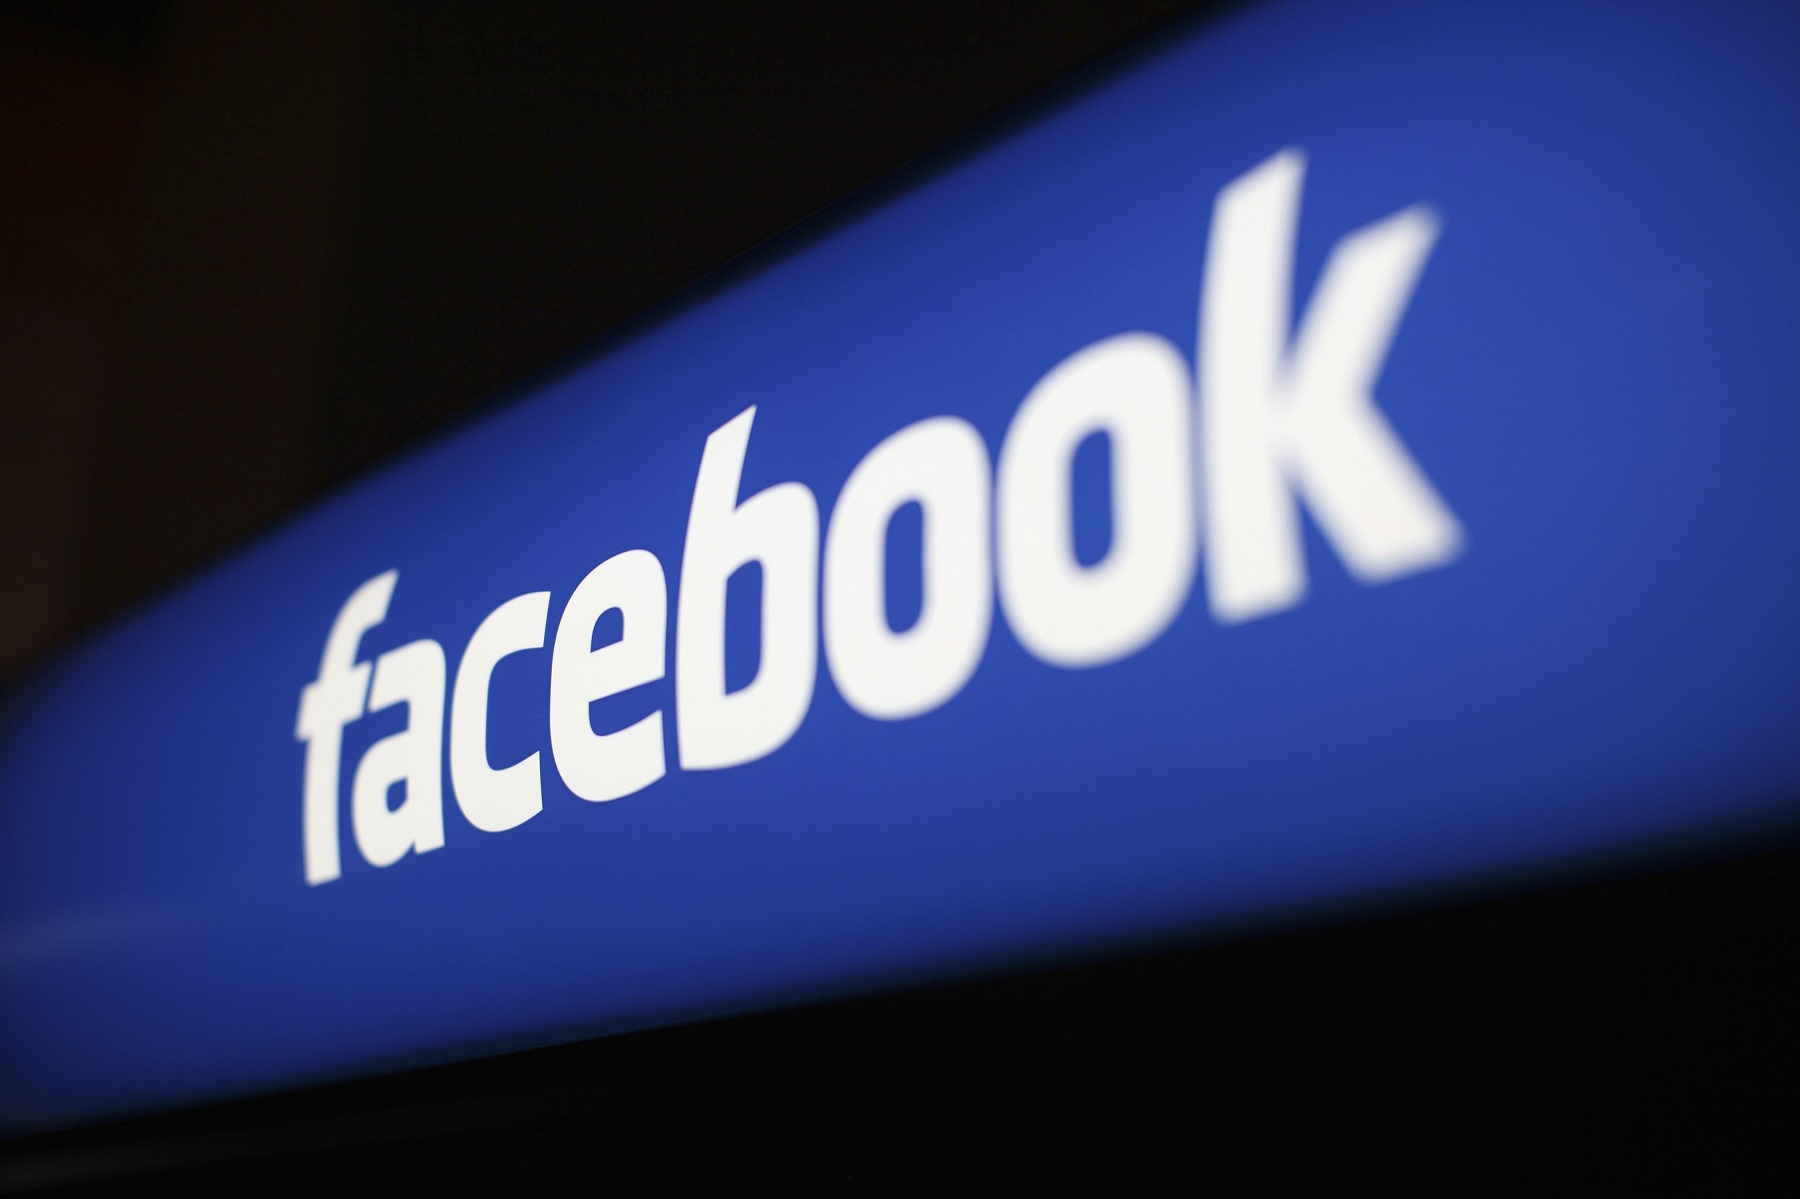 give you 2.000 Facebook fan page likes, 250 post likes,100 shares and 5 comments